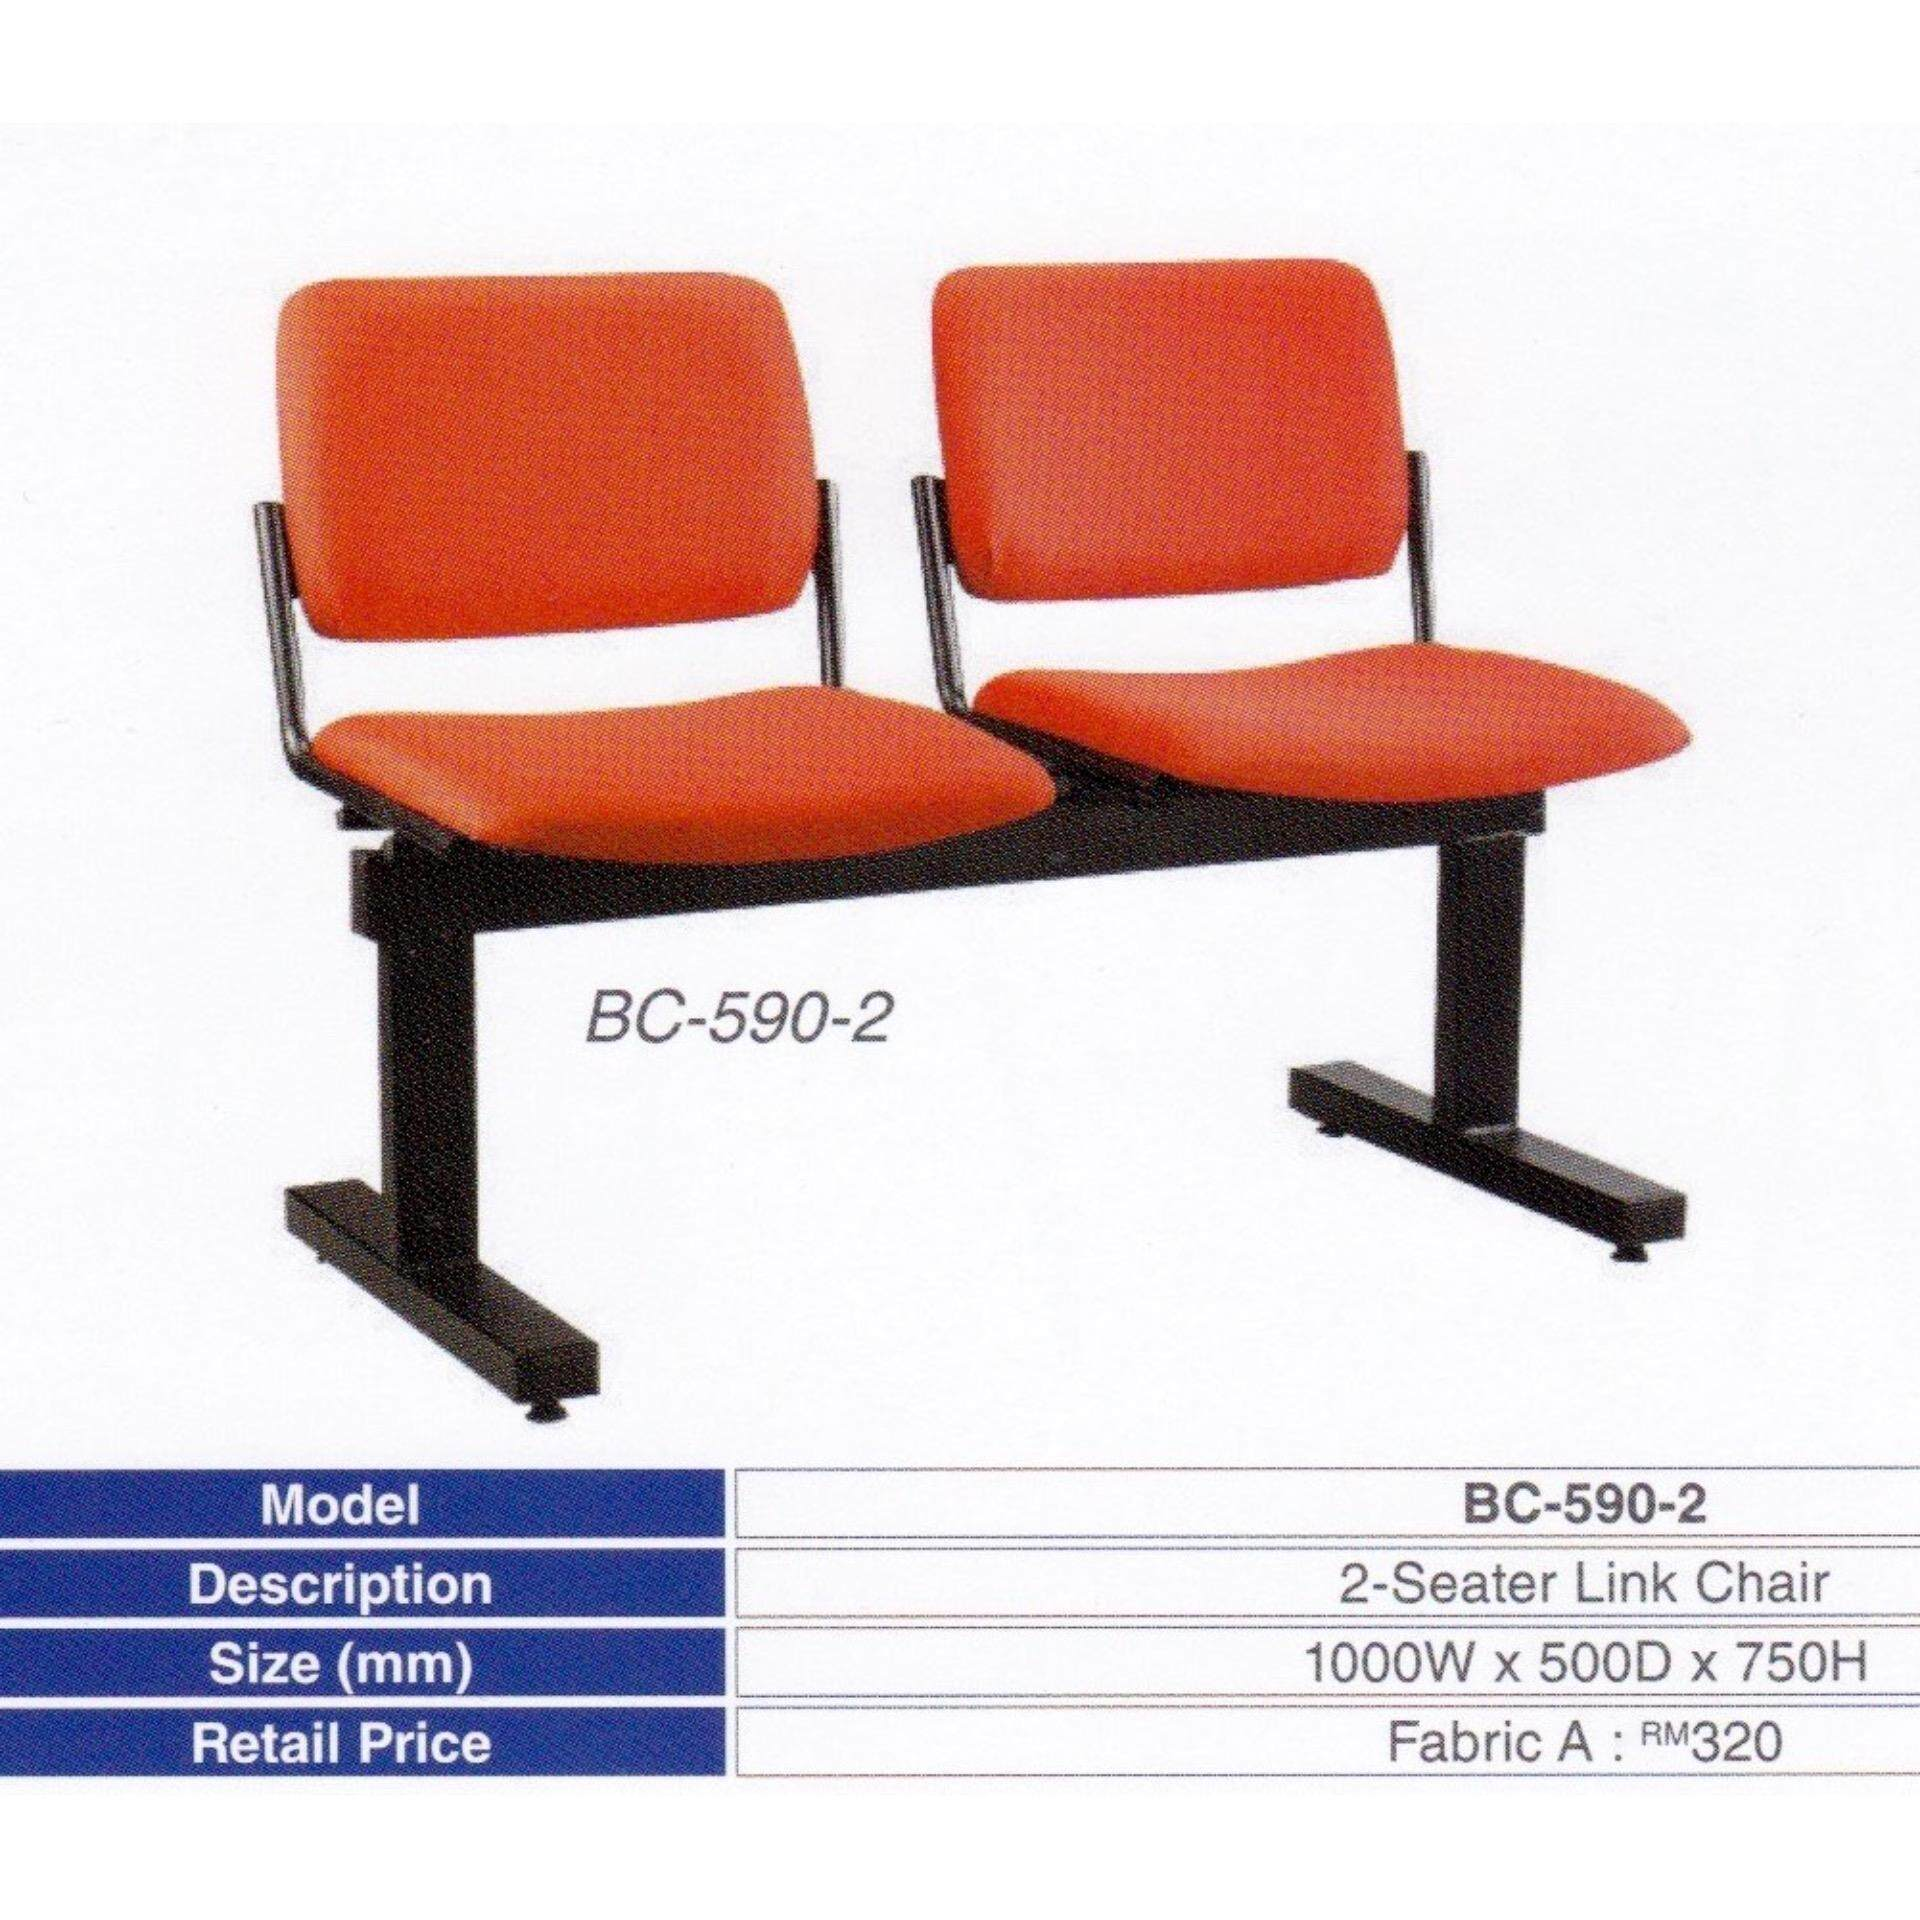 Deco Waiting Area 2-Seater Link Cushion Chair Hall Clinic Office Chair (Red Color) L1000MM X D500MM X H750MM